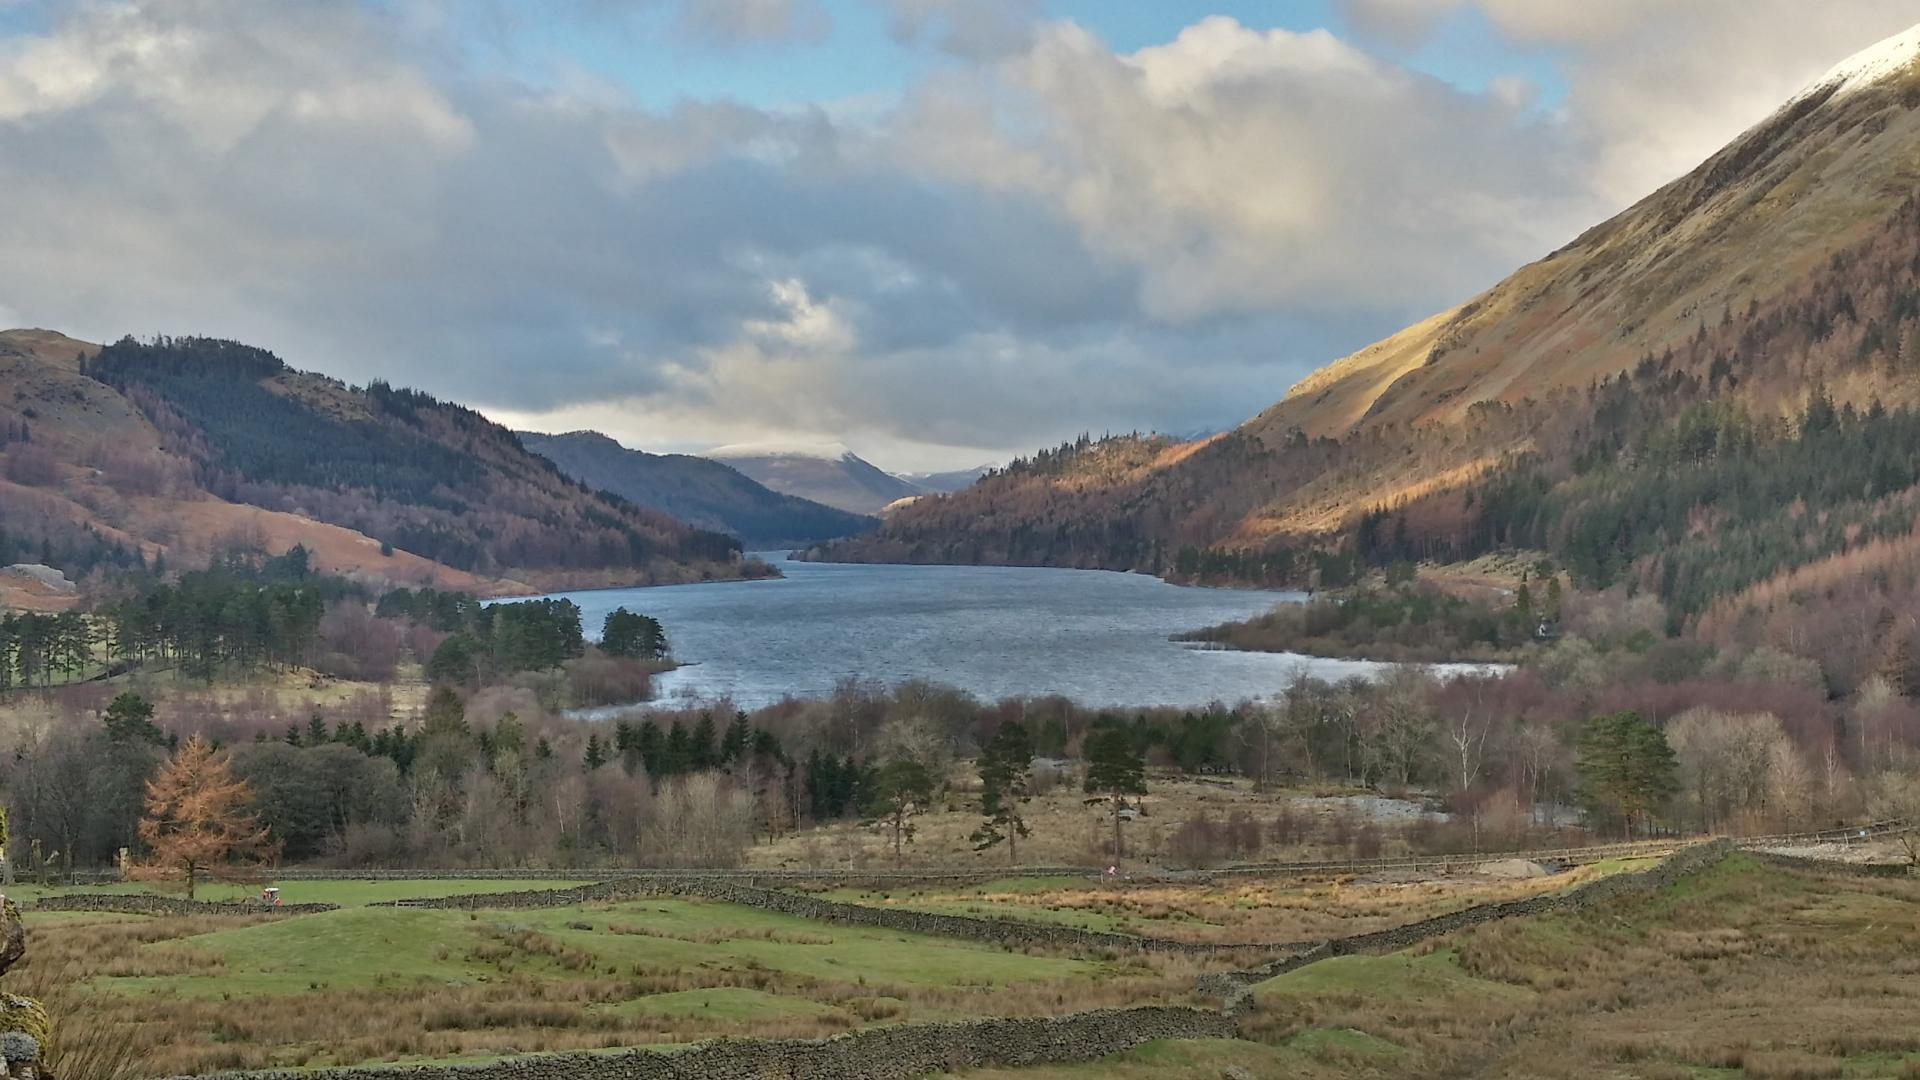 Walking along Thirlmere, with great views of Raven Crag